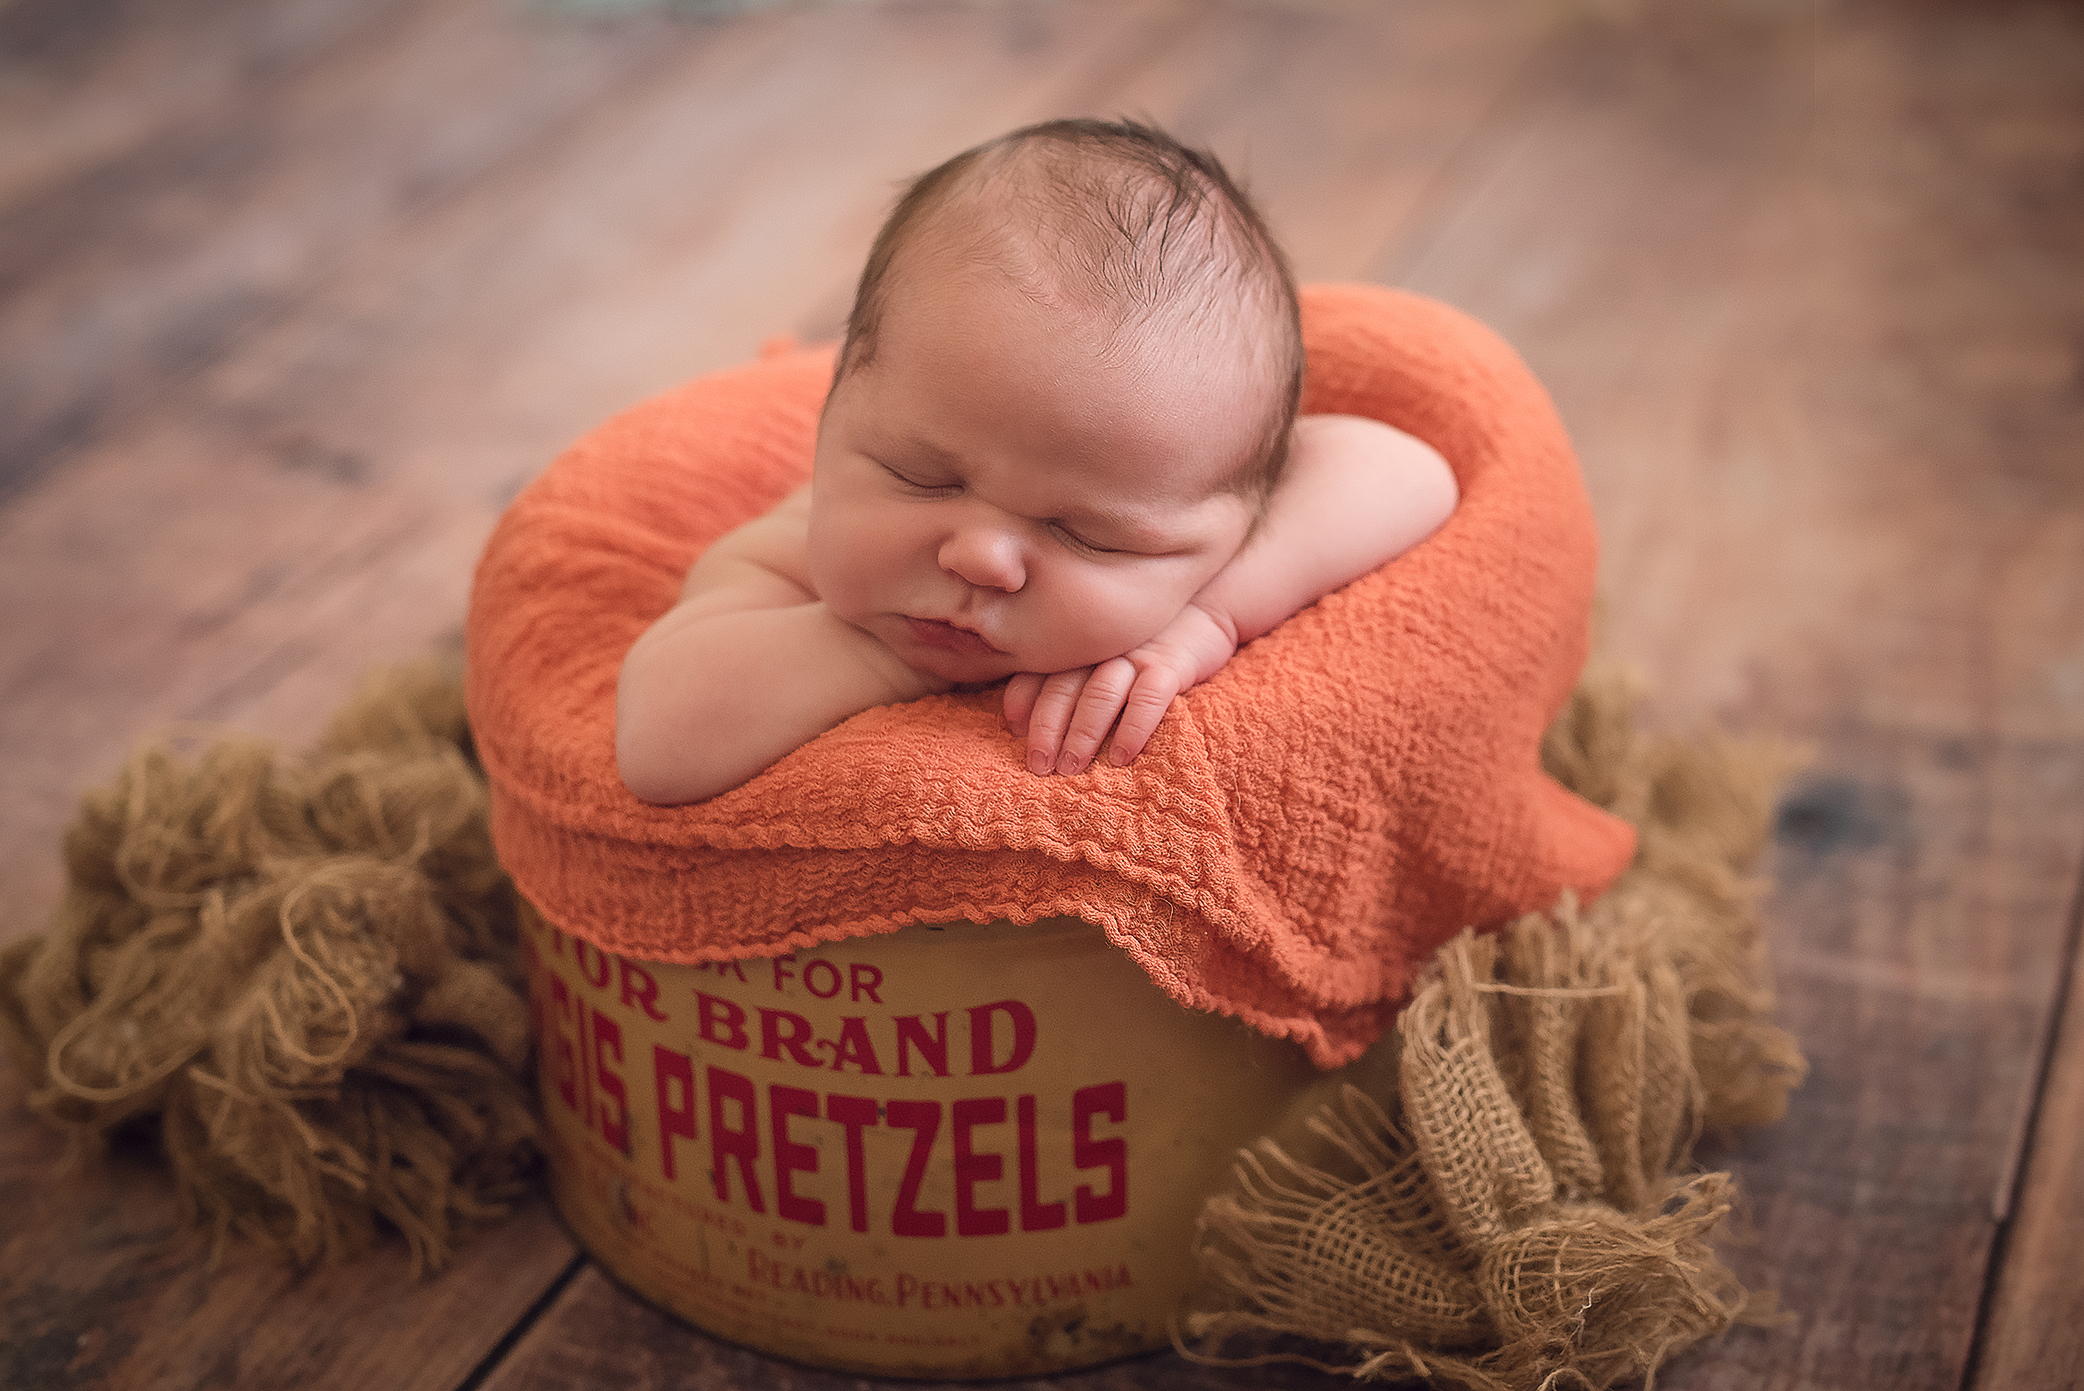 Newborn Professional Photography. Julie Bradley is Pittsburgh